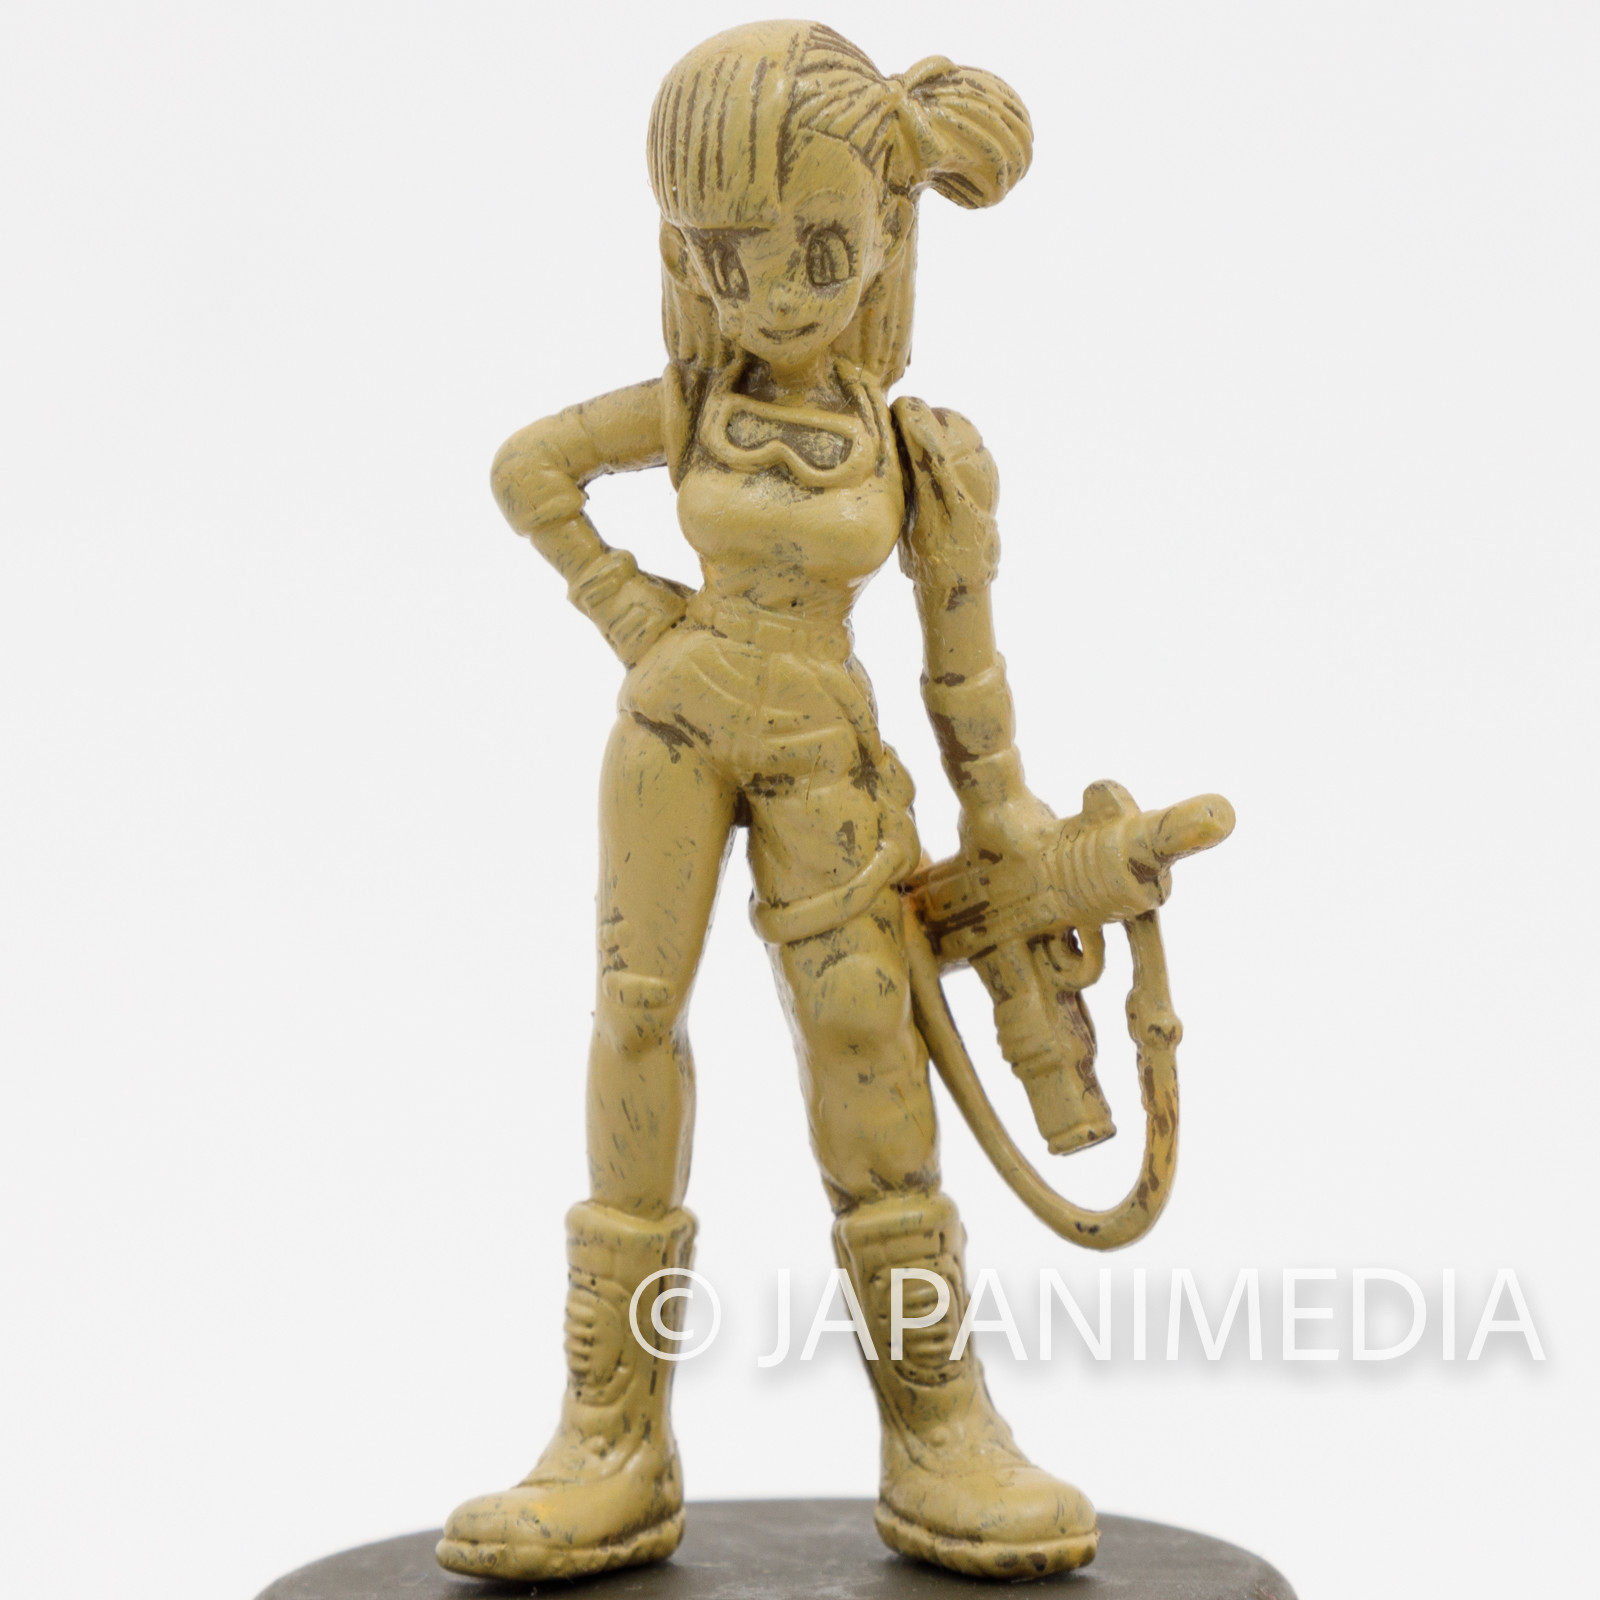 Dragon Ball Z Non-Colored Miniature Figure Armed Bulma